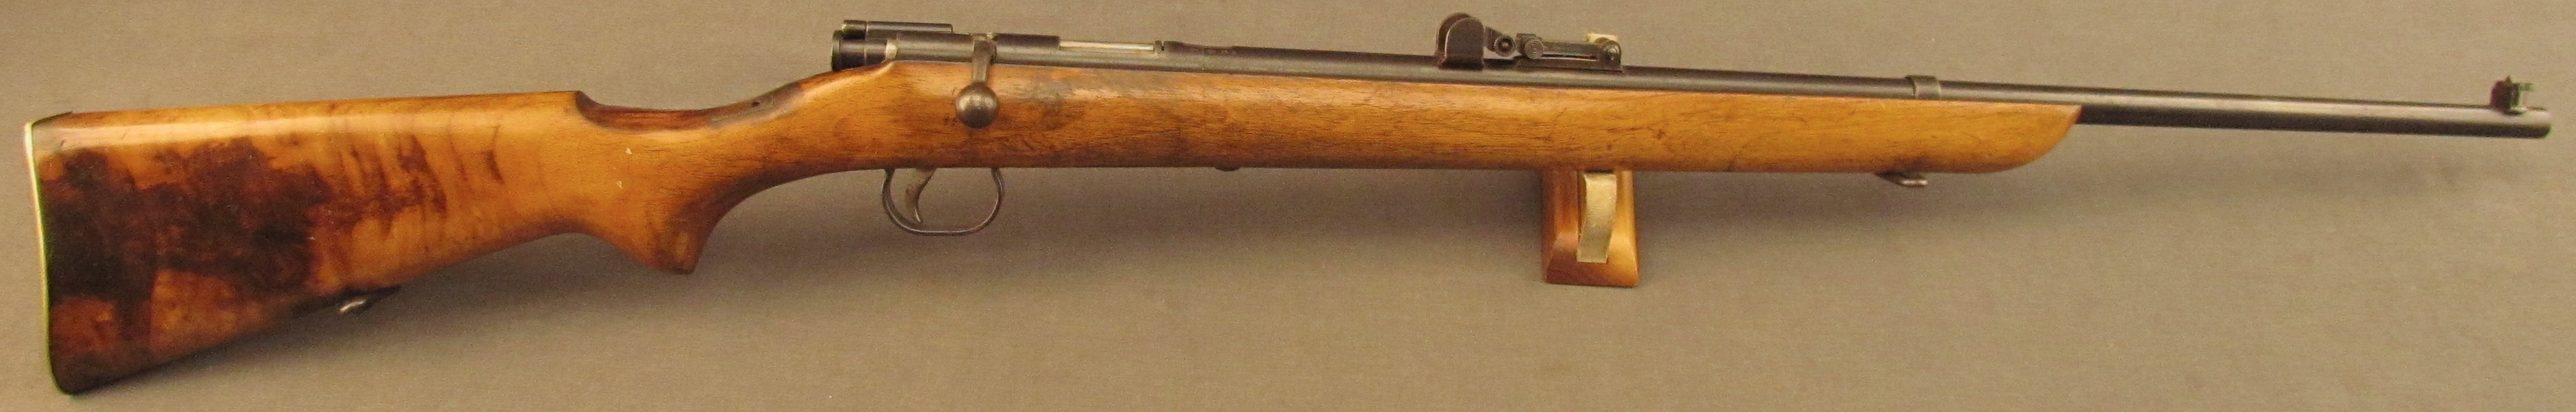 BSA single shot rifle similar to the one we used for our home shooting range. You will find this one for sale  at https://www.joesalter.com/category/products/BSA-War-Office-Military-22-Rifle